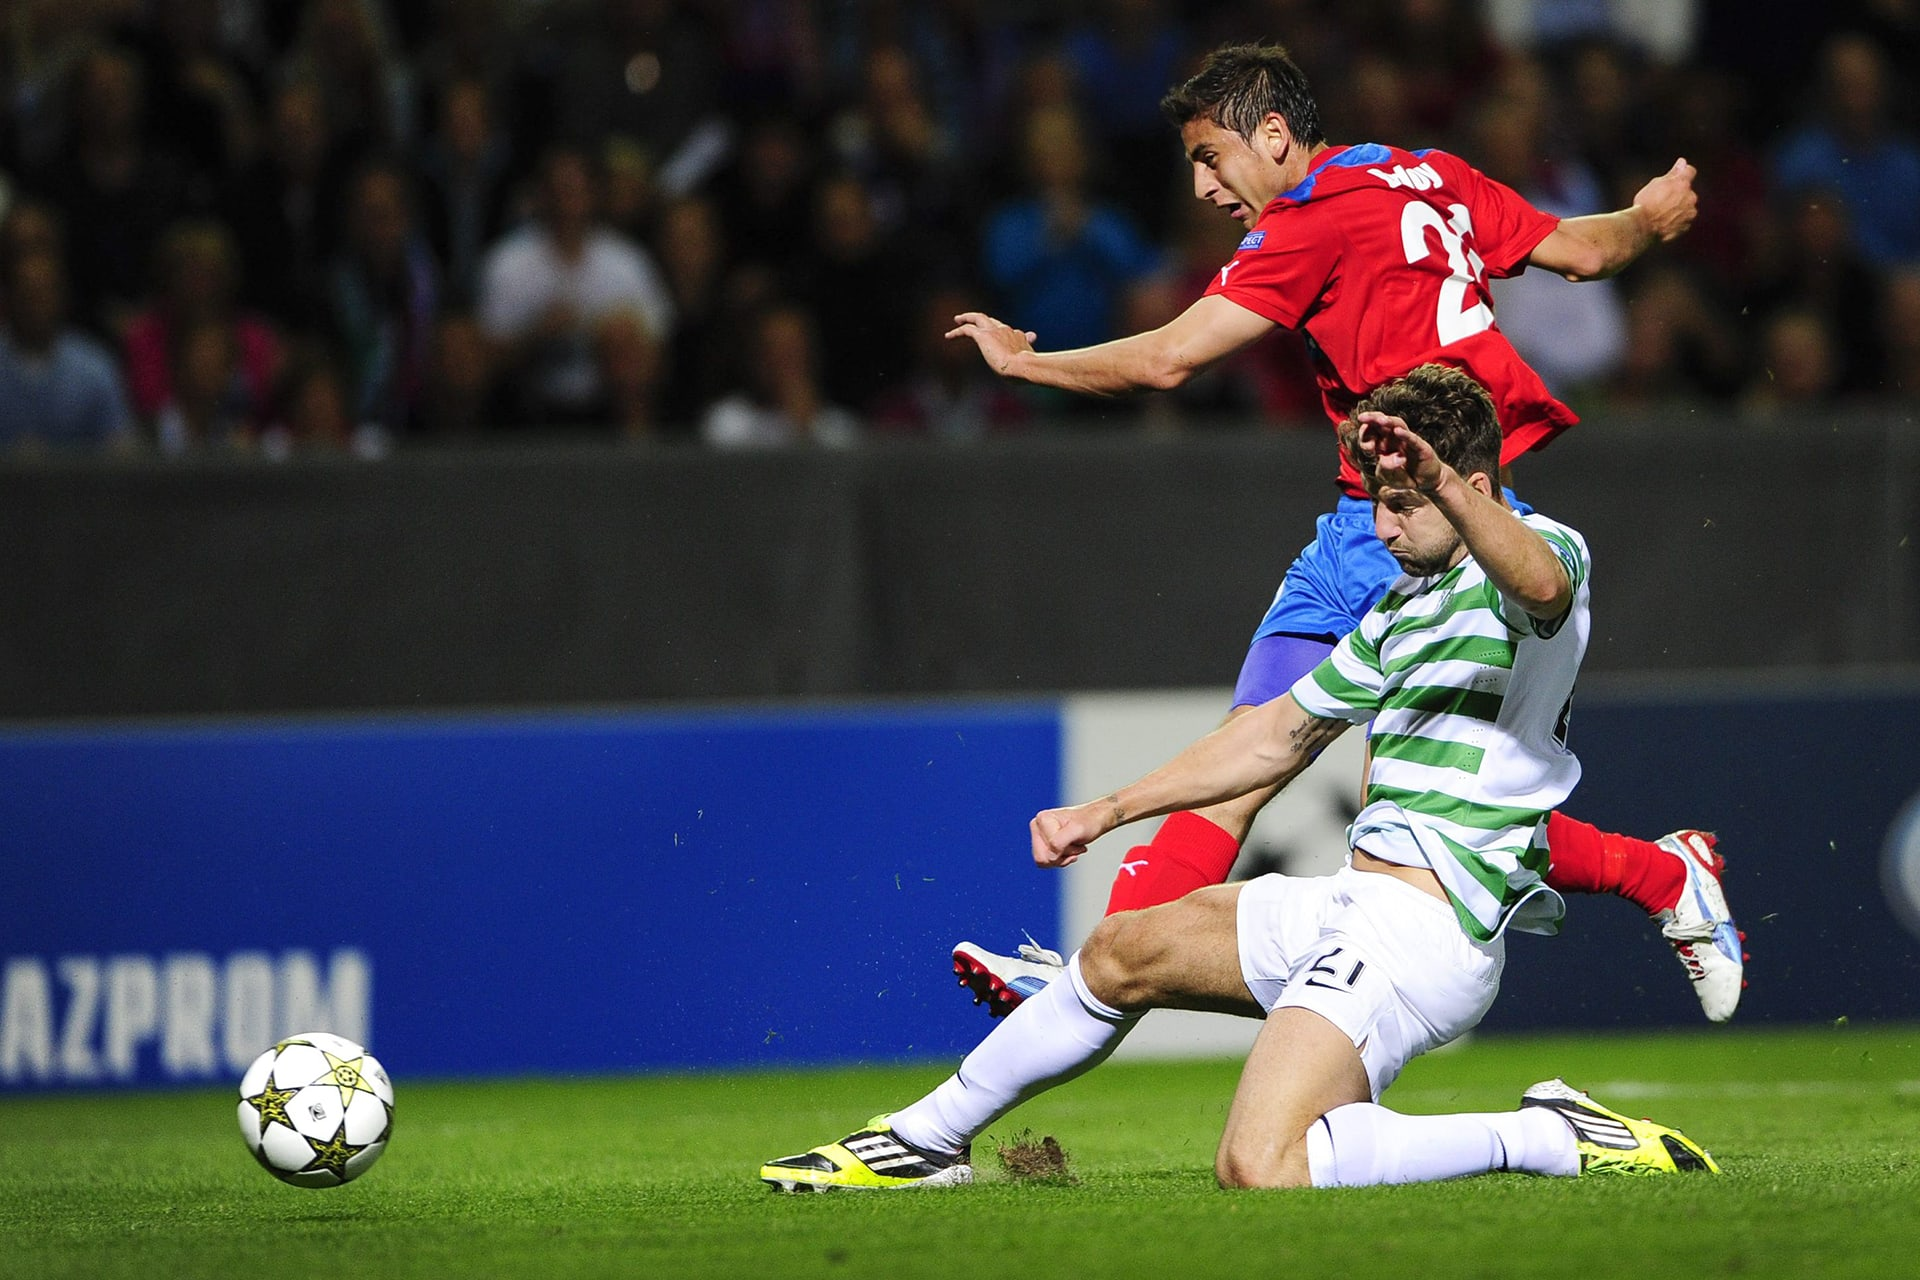 Alejandro Bedoya (top) of Helsingborg shoots past Celtic's Charlie Mulgrew (bottom) during the Champions League play-off soccer match between Helsingborgs IF and Celtic FC at the Olympia stadium in Helsingborg, Sweden, Tuesday, Aug. 21, 2012. (AP Photo/Scanpix Sweden/Bjorn Lindgren) SWEDEN OUT